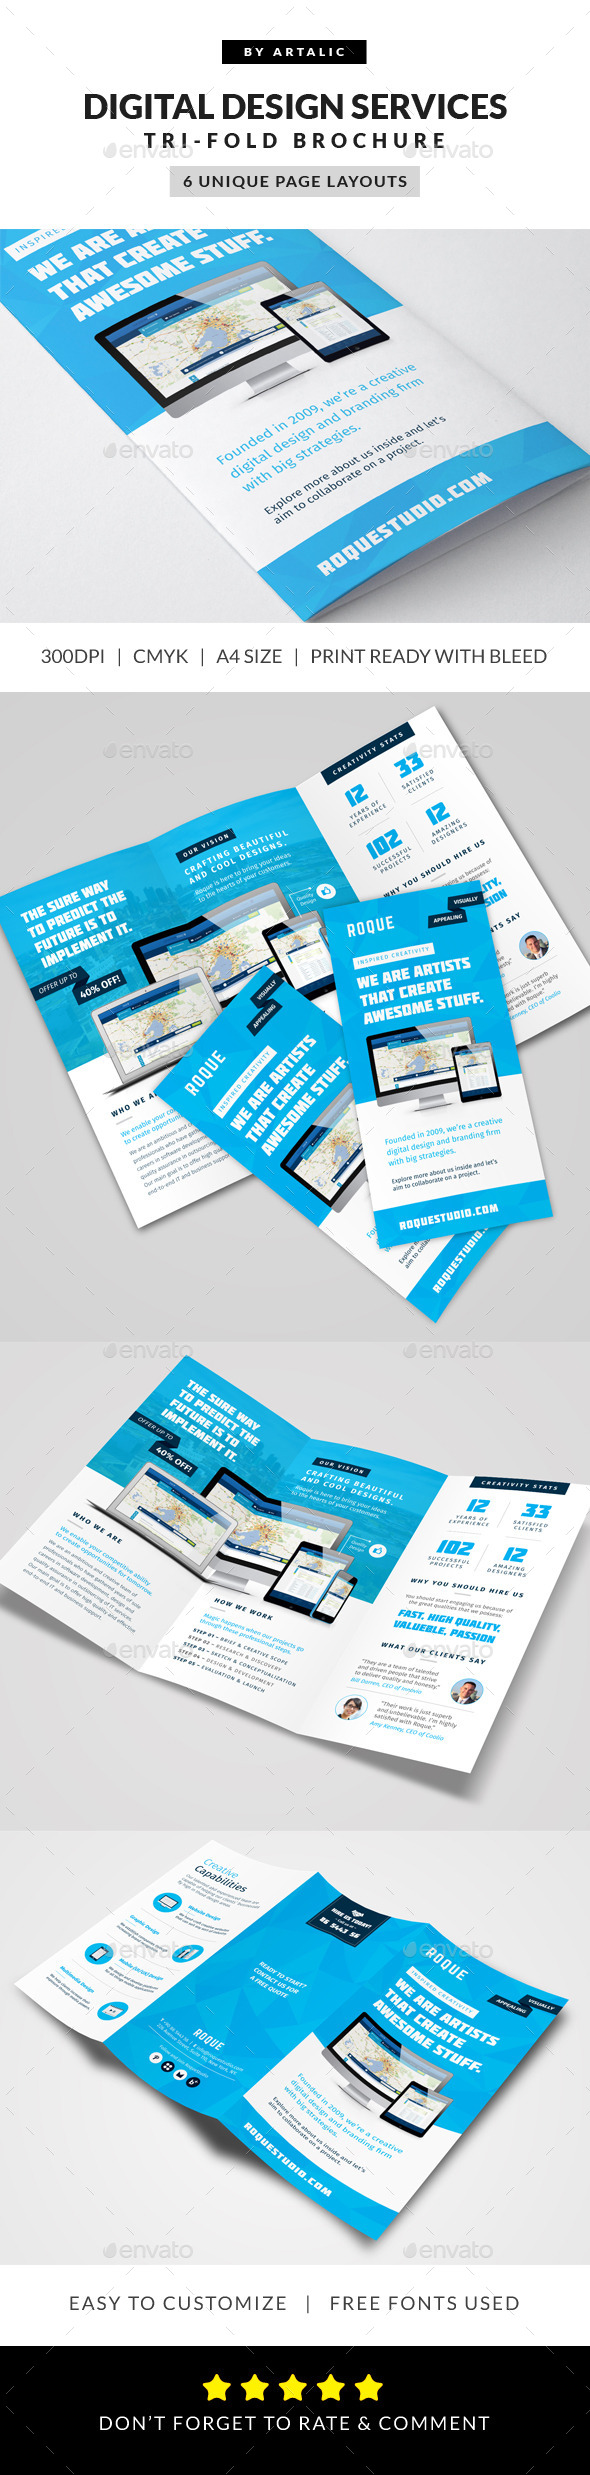 Web Design Agency Brochure - Informational Brochures